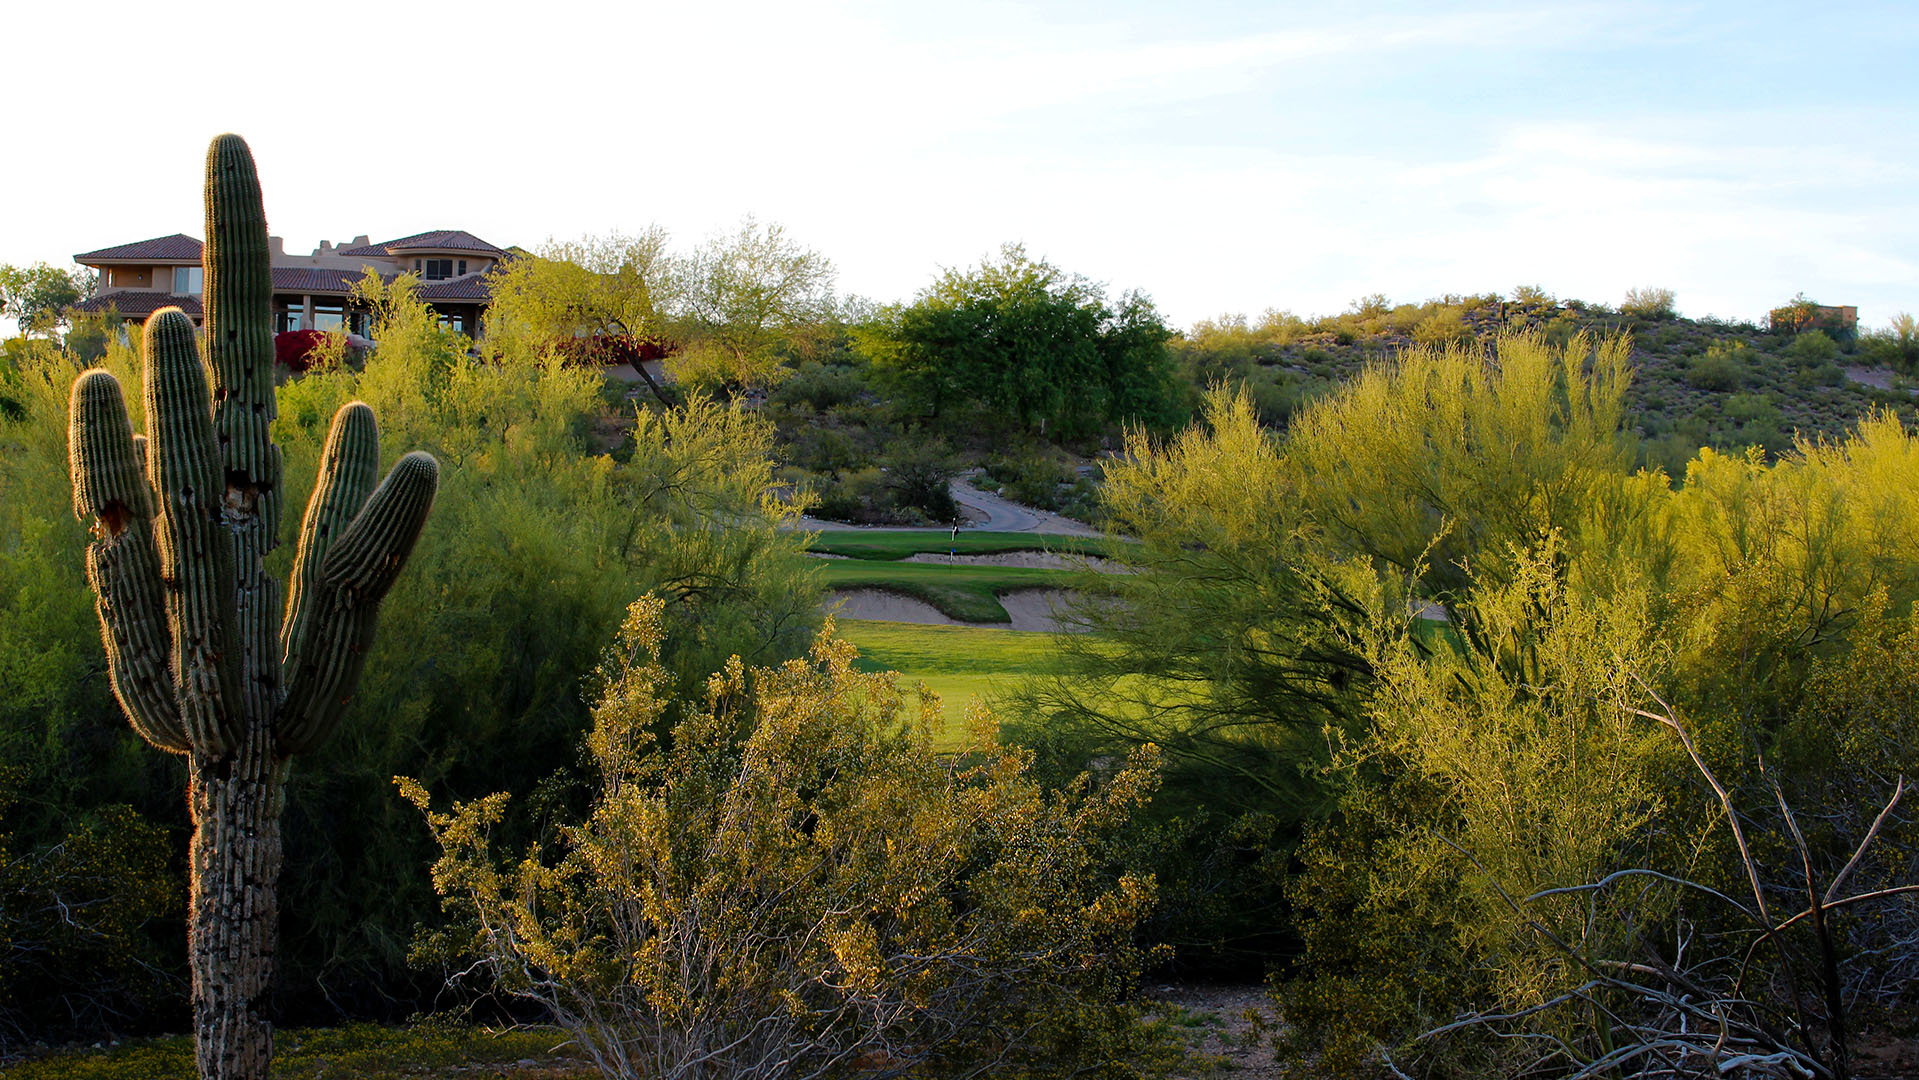 The course at Lookout Mountain Golf Club is lined with beautiful shrubbery